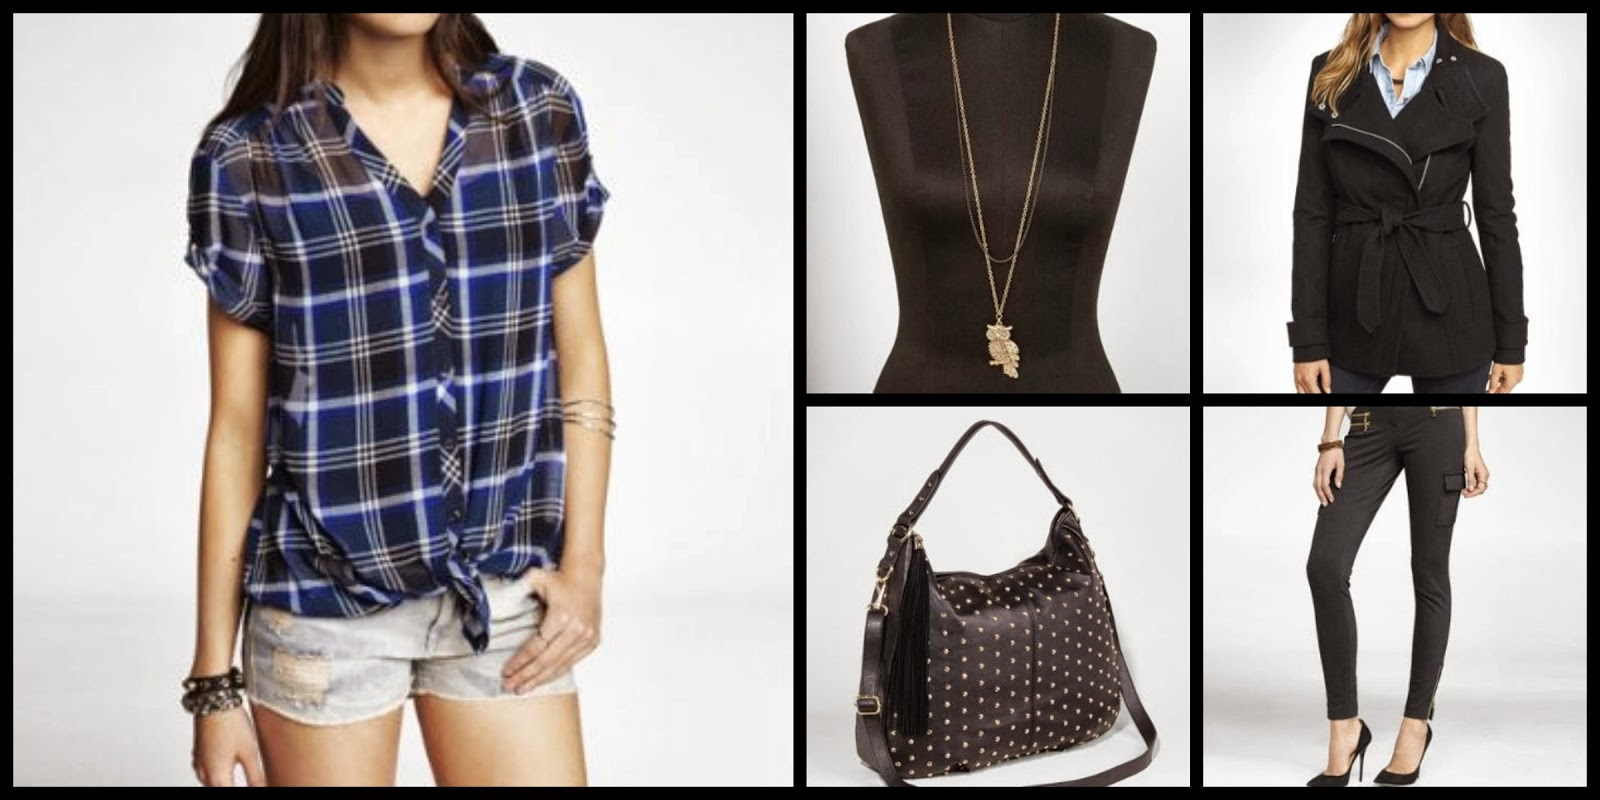 Express chiffon tie plaid top, owl pendant, studded bag, asymmetrical coat, black skinny cargo legging